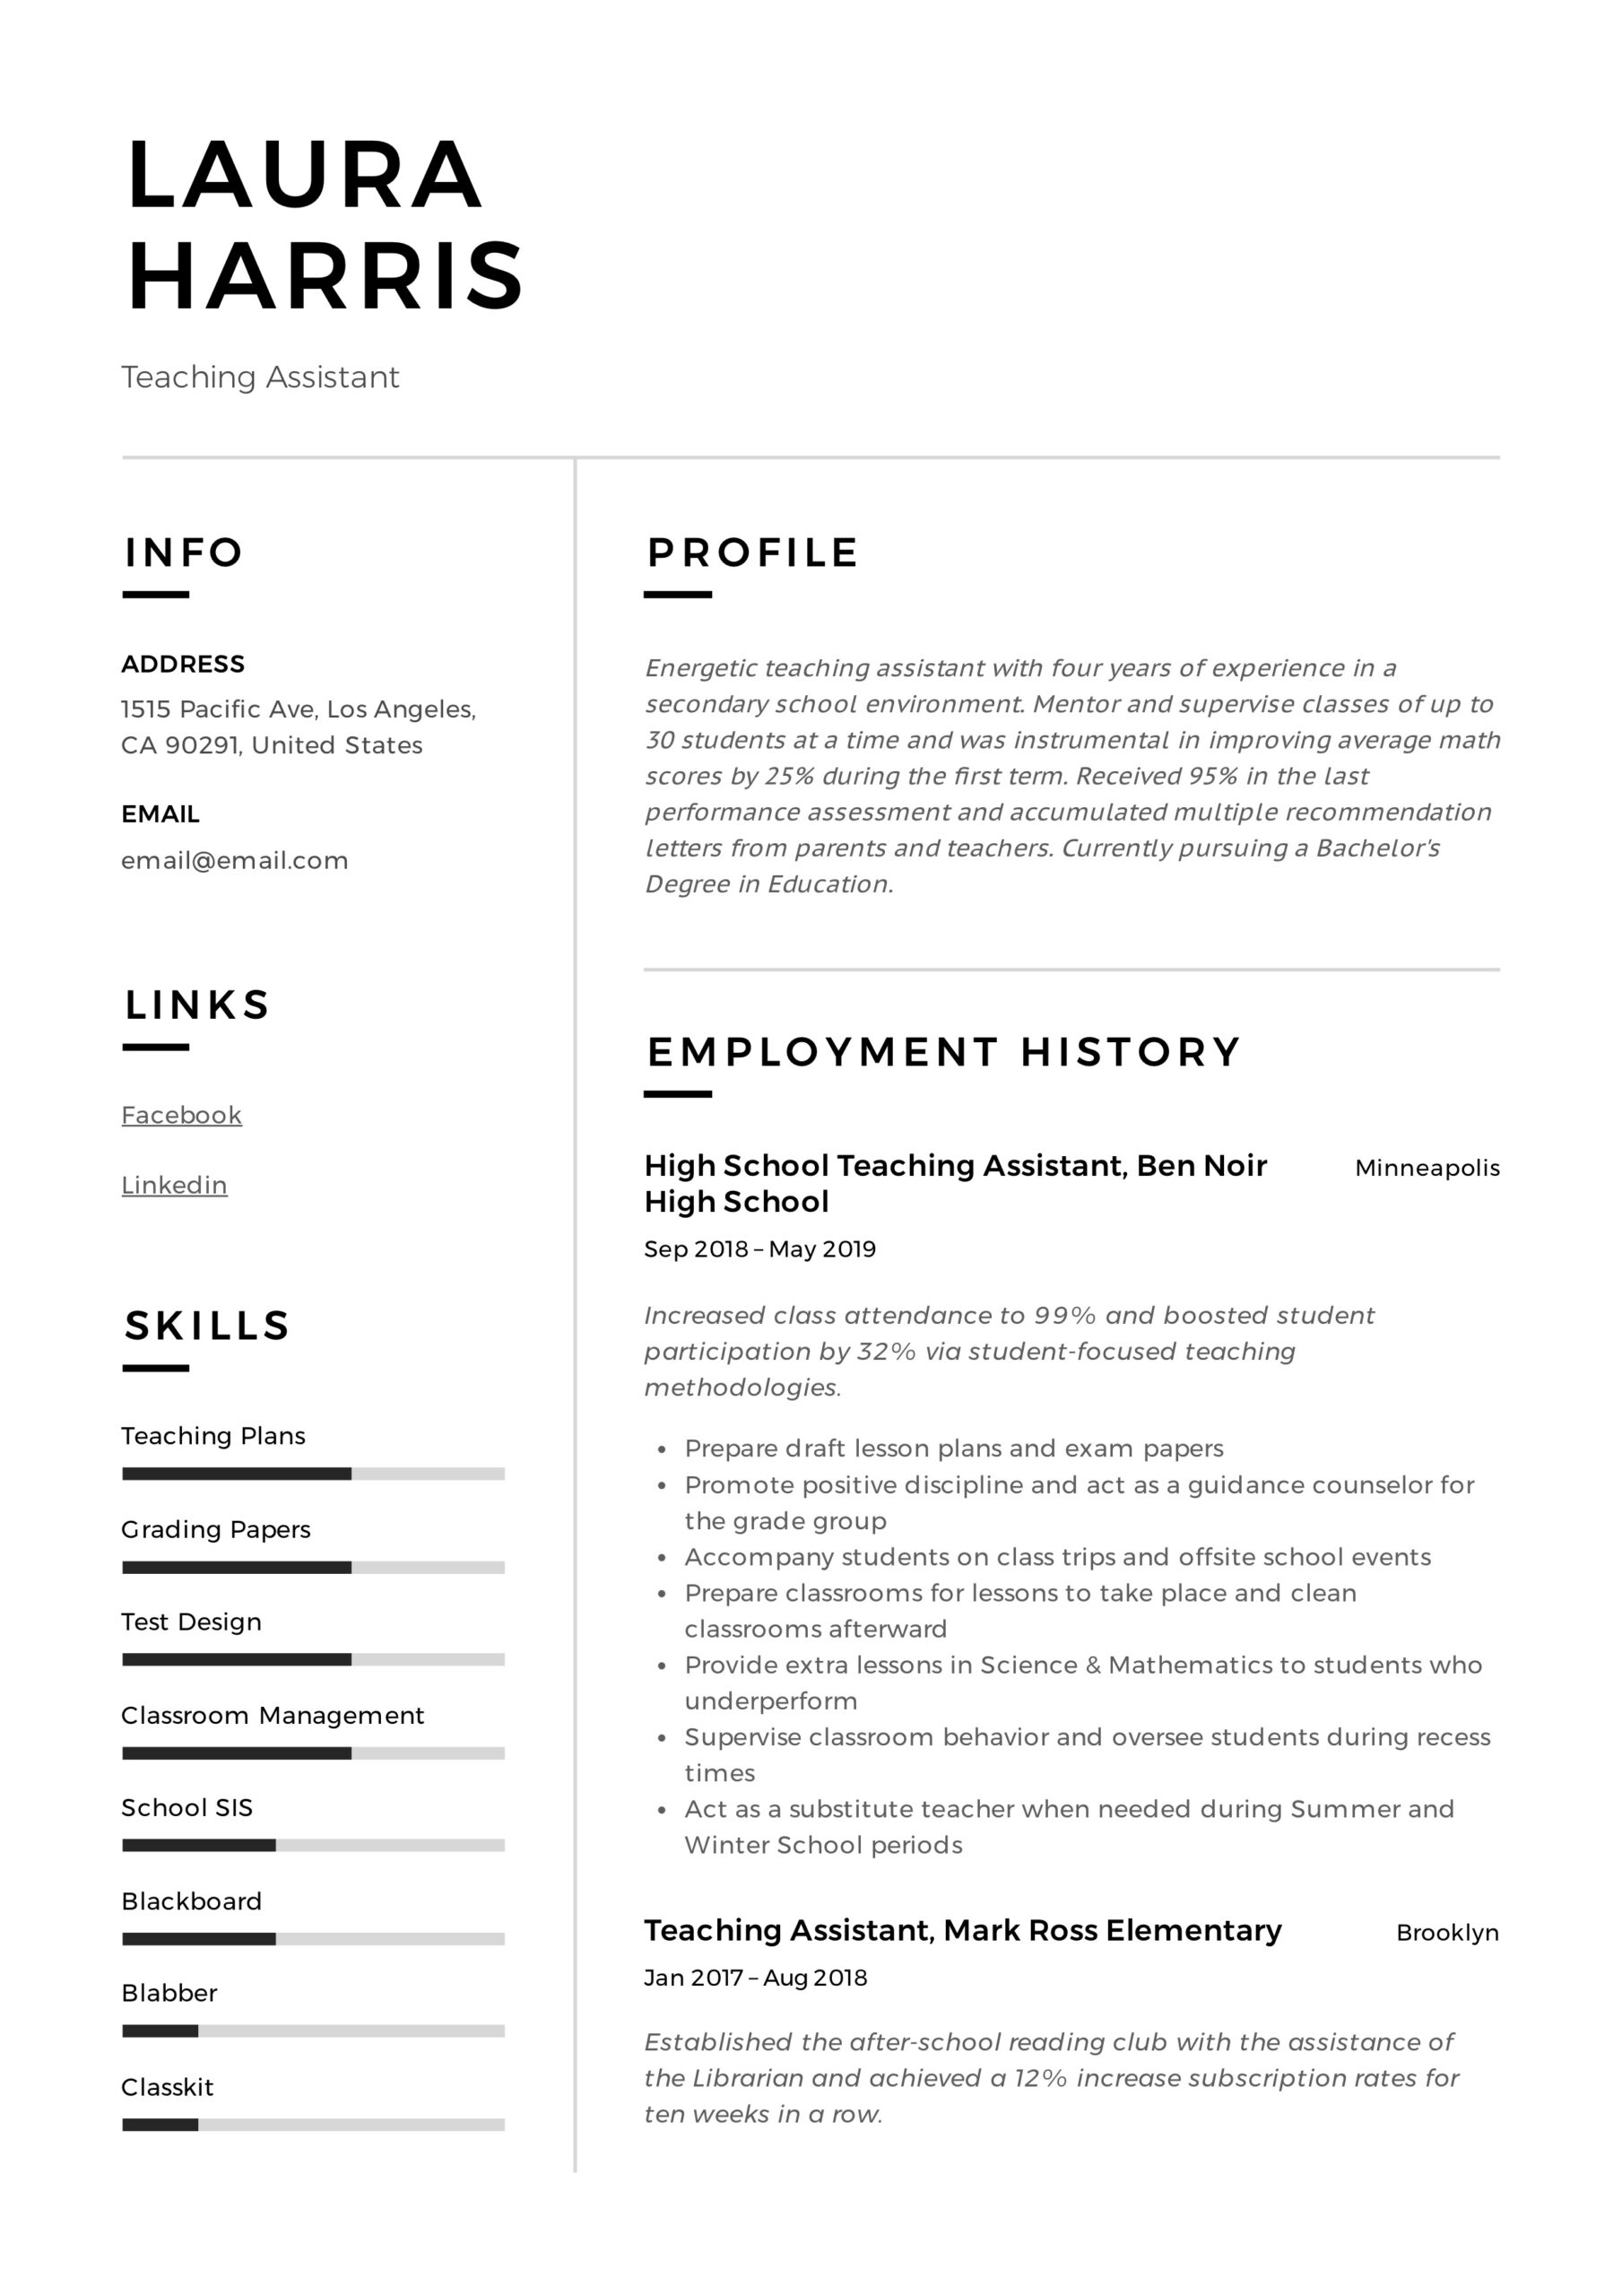 teaching assistant resume writing guide templates pdf skills for teacher template Resume Skills For A Teacher Assistant Resume